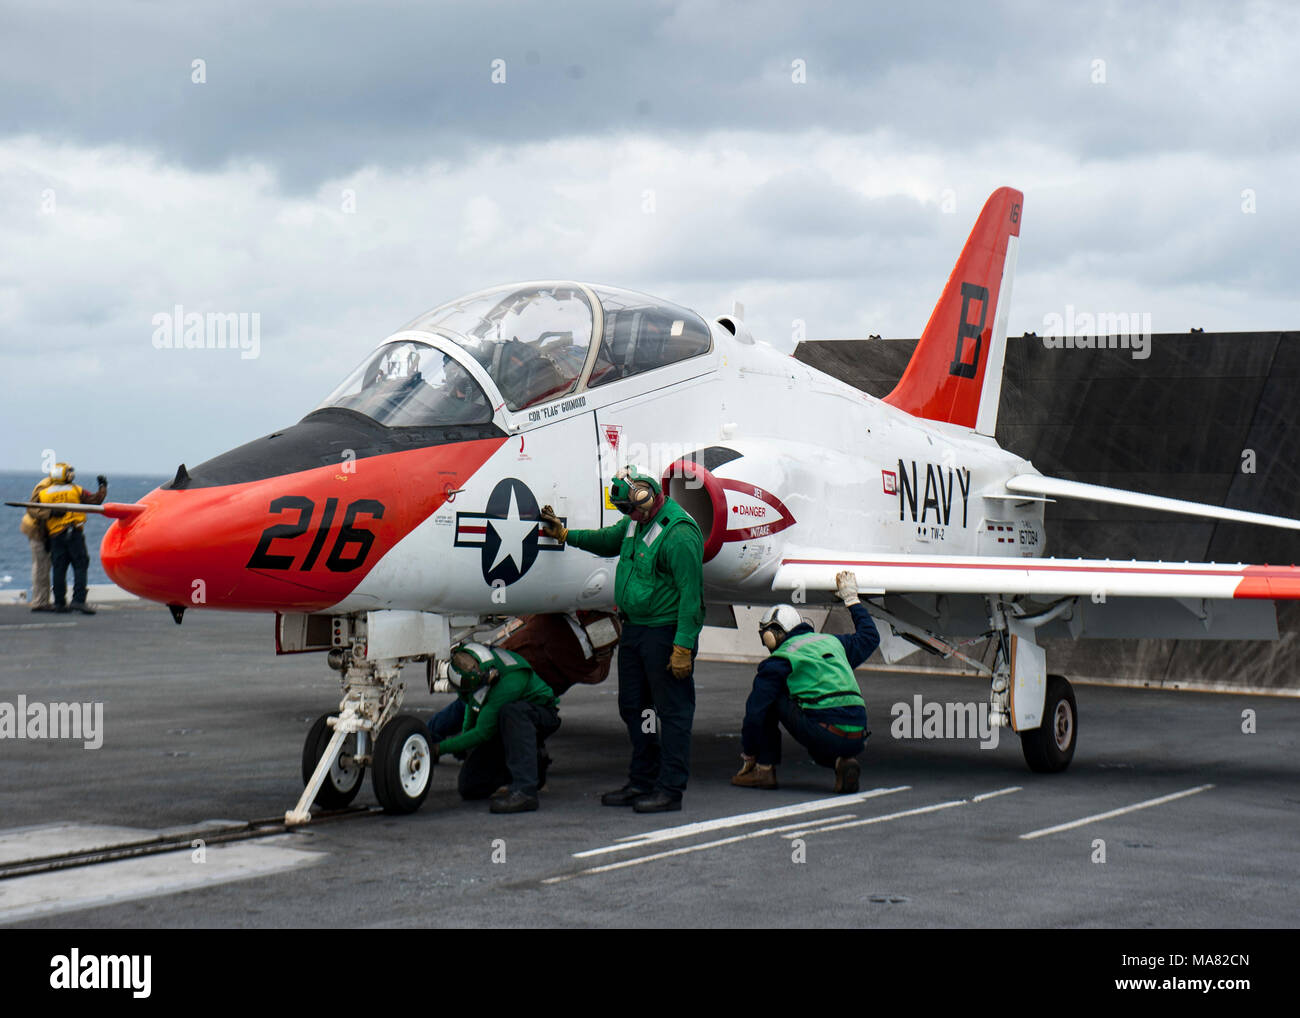 180328-N-WX604-0337 ATLANTIC OCEAN (March 29, 2018) Lt. j.g. Tyler Ballard, assigned to Training Air Wing (TW) 2, prepares to take off in a T-45C Goshawk aboard the aircraft carrier USS George H.W. Bush (CVN 77). The ship is underway conducting sustainment exercises to maintain carrier readiness. (U.S. Navy photo by Mass Communication Specialist 2nd Class Joseph E. Montemarano) - Stock Image